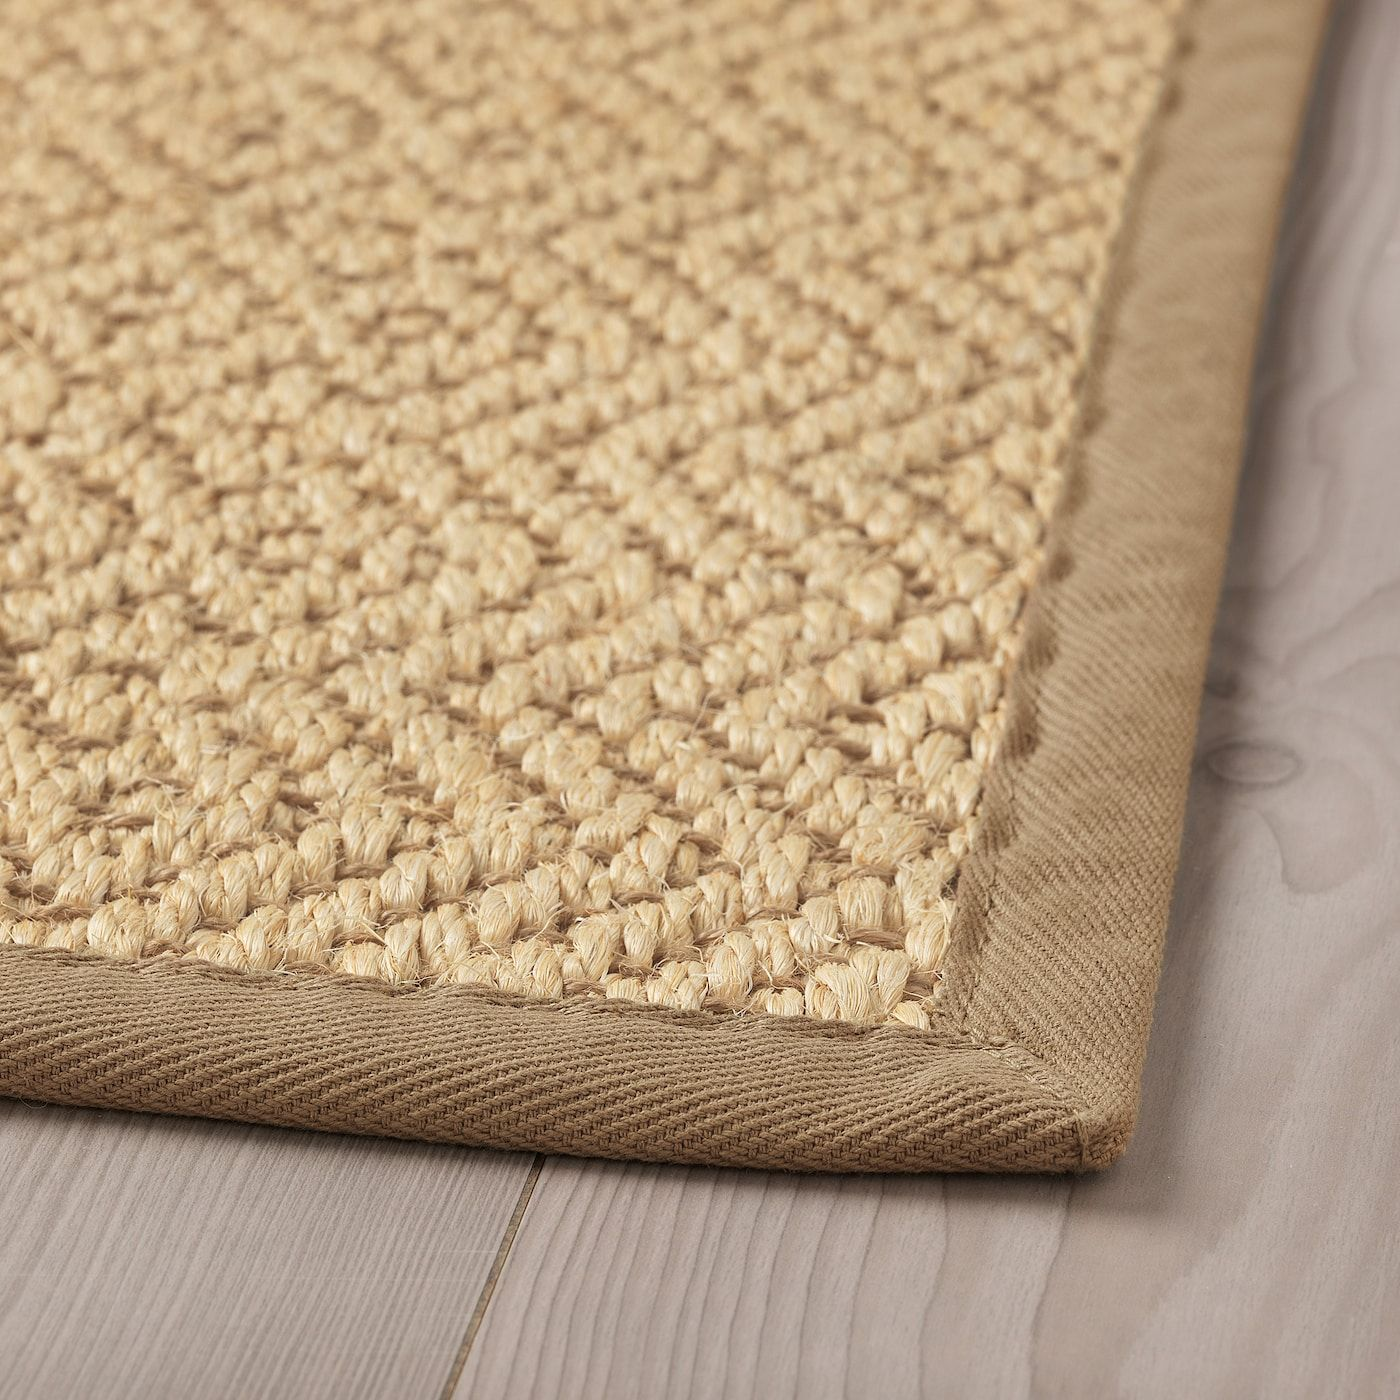 Vistoft Rug Flatwoven Natural Ca Ikea In 2020 Flatwoven Rugs Layered Rugs